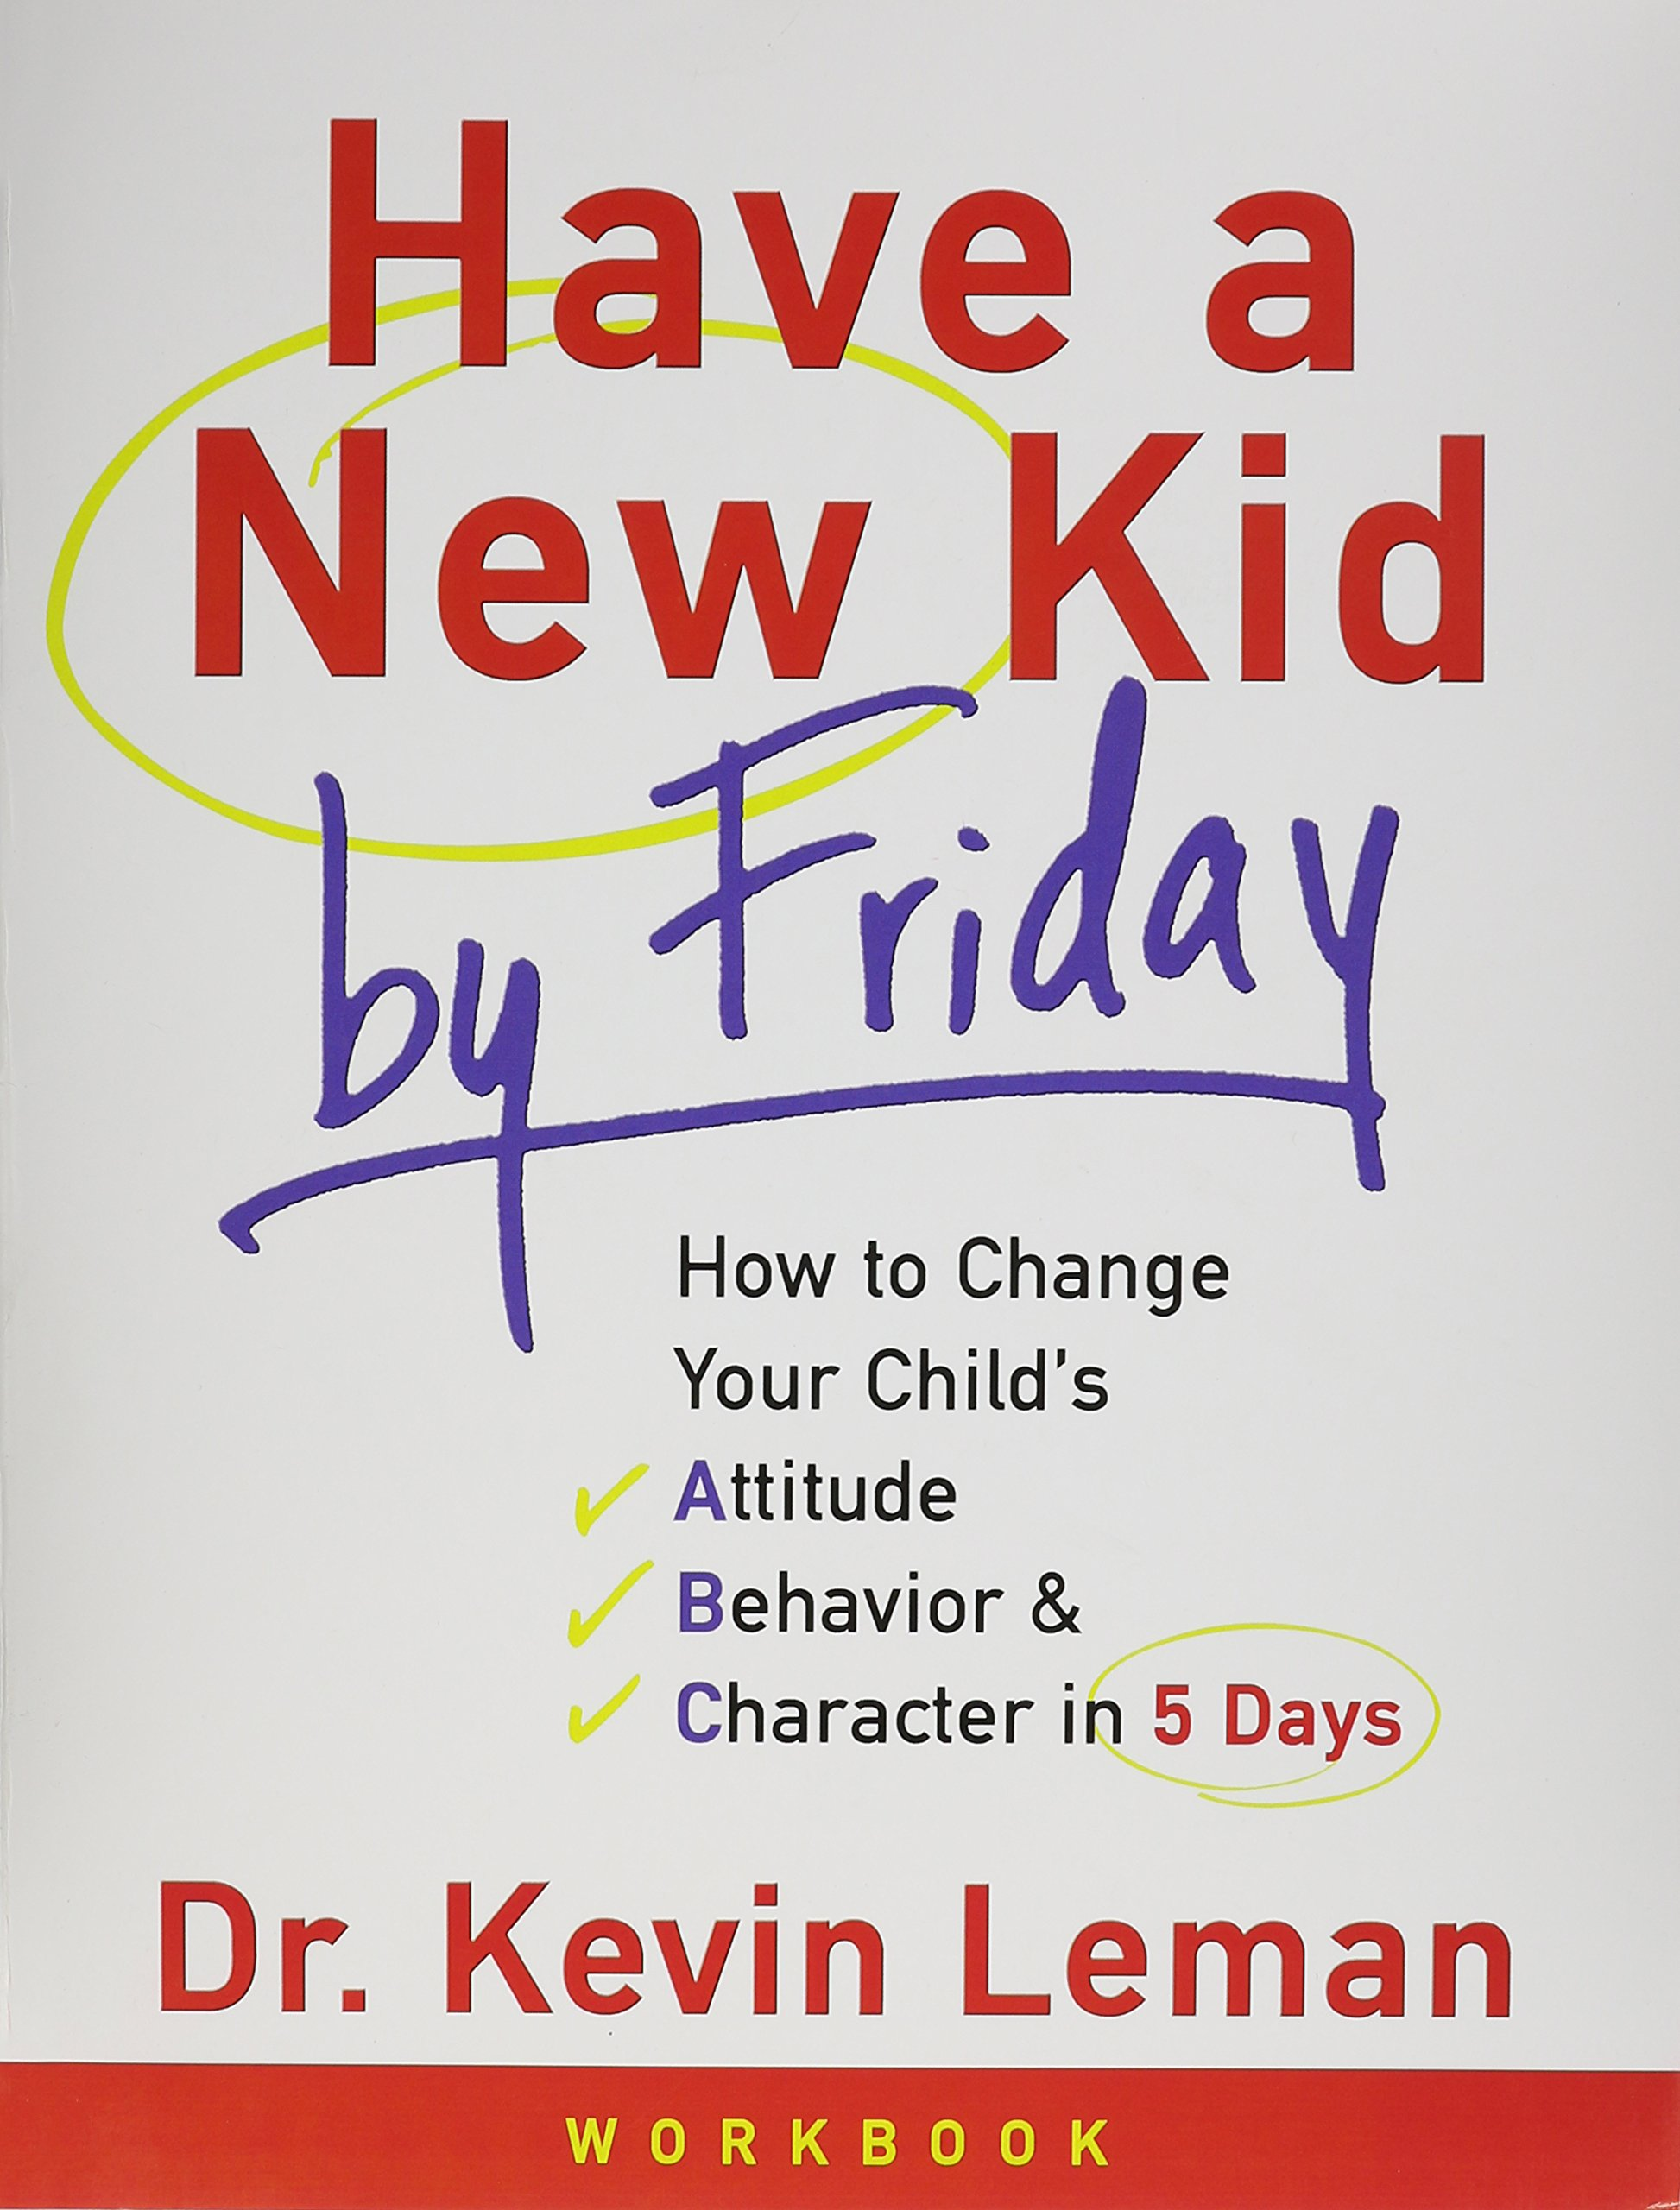 Forum on this topic: How to Change Your Childs Attitude, how-to-change-your-childs-attitude/